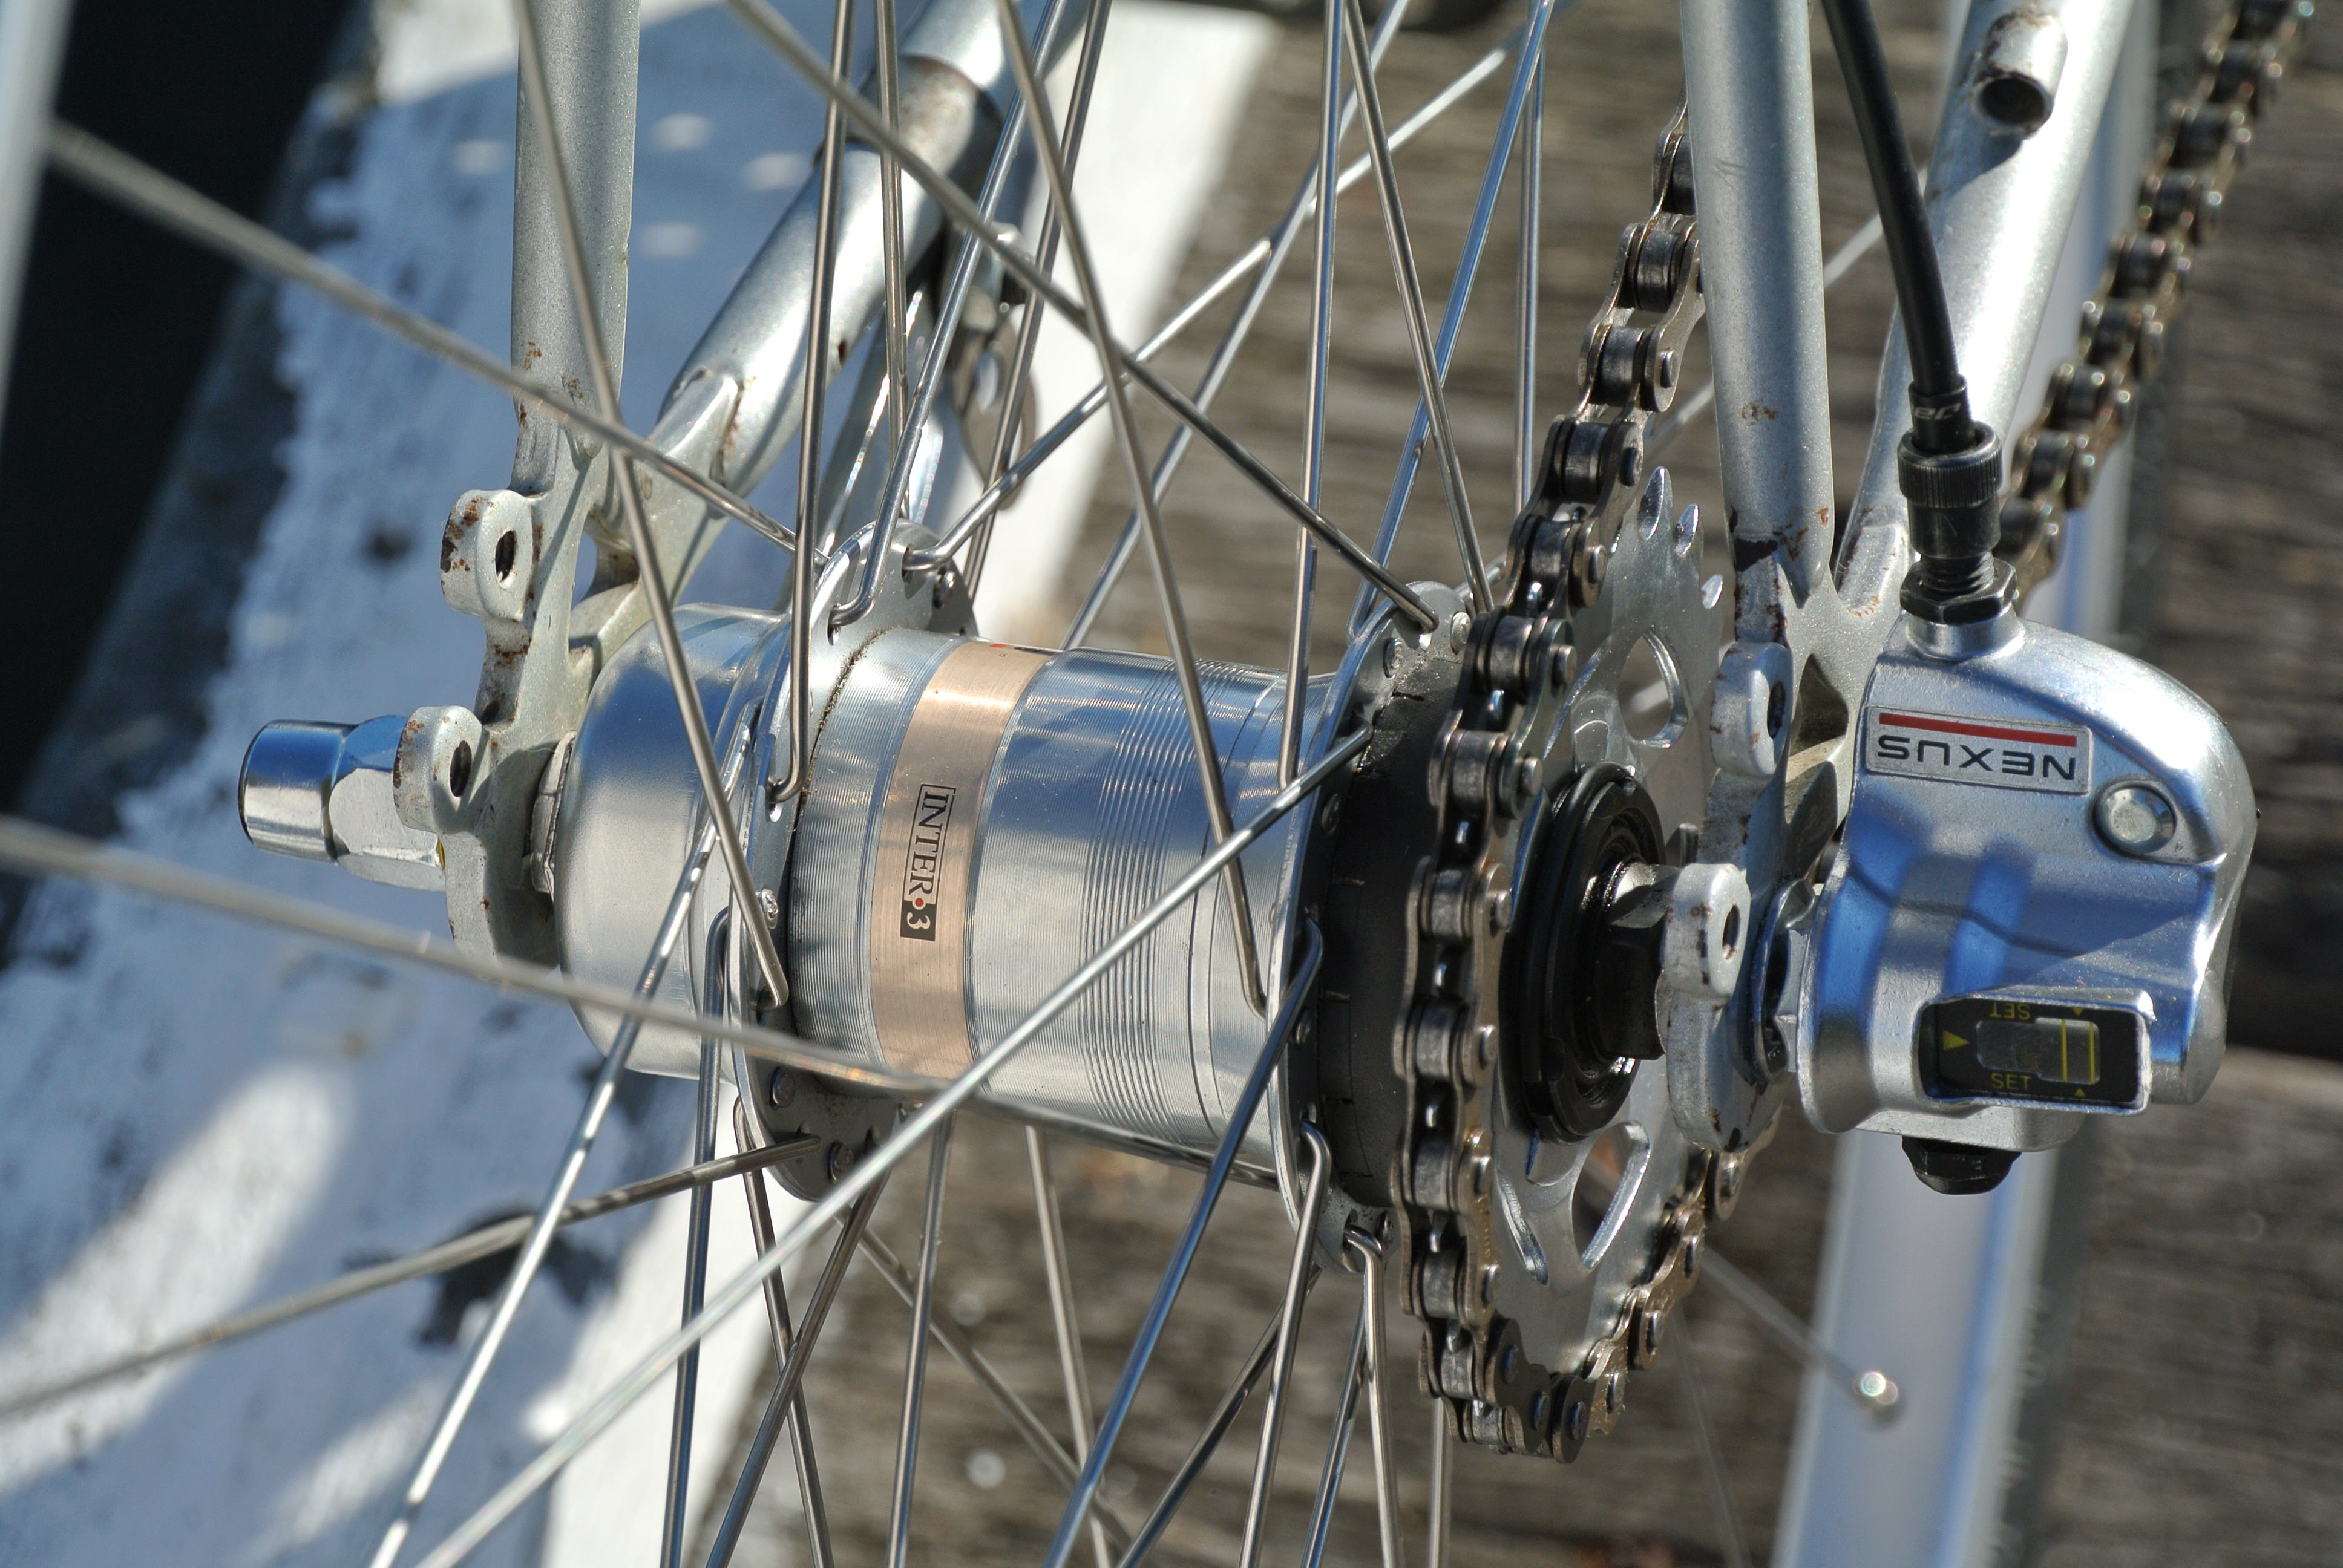 Converting 10 Speed Bicycles To 3 Speed A New Recyclist